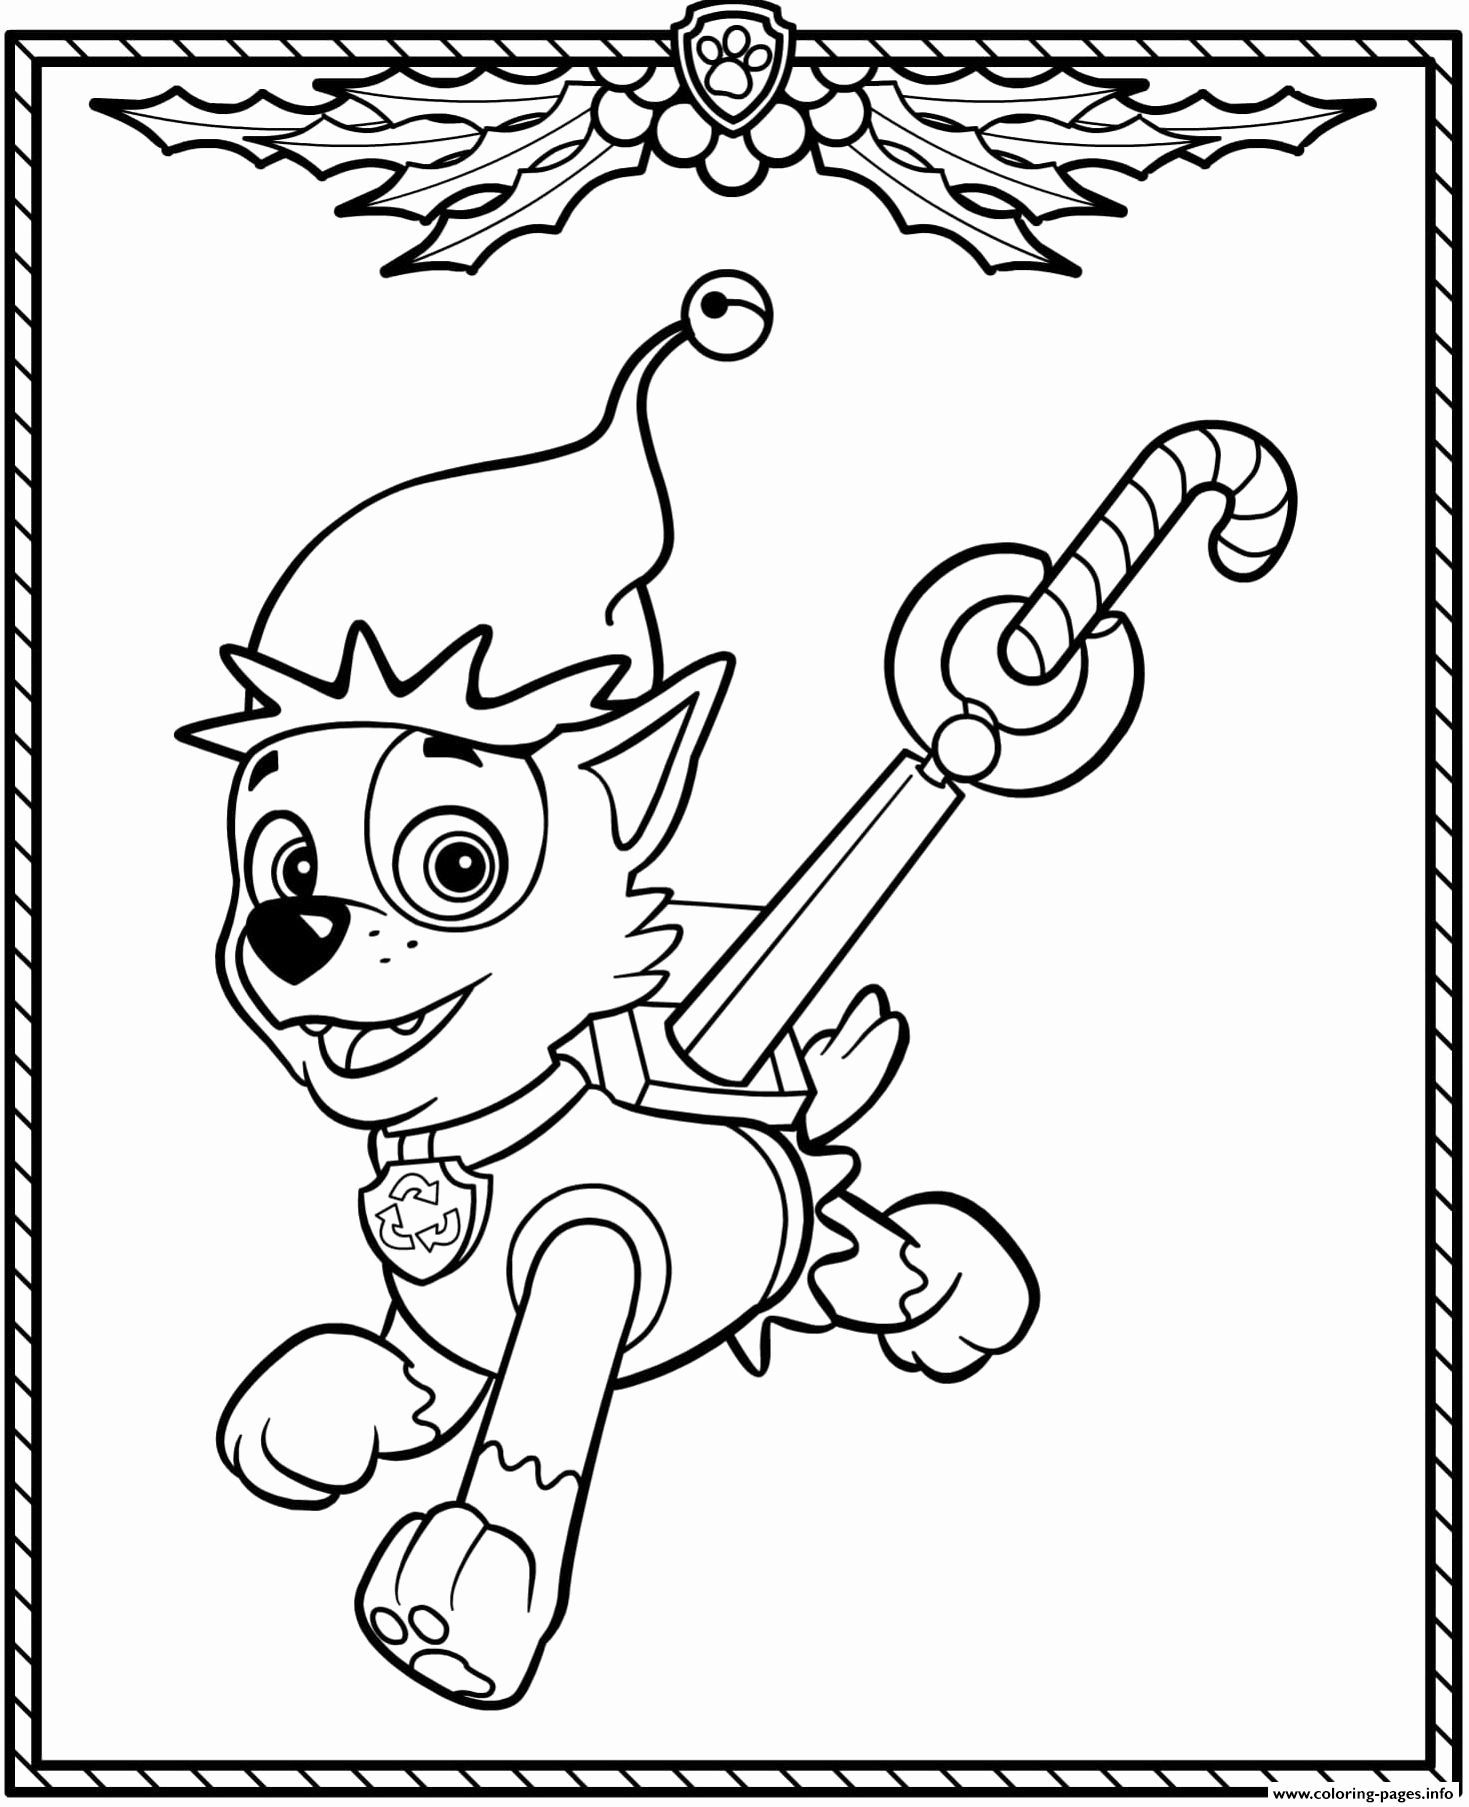 Holiday Coloring Books Bulk New Coloring Free Printable Mini Coloring Books Frozen Disney In 2021 Paw Patrol Coloring Paw Patrol Christmas Halloween Coloring Pages